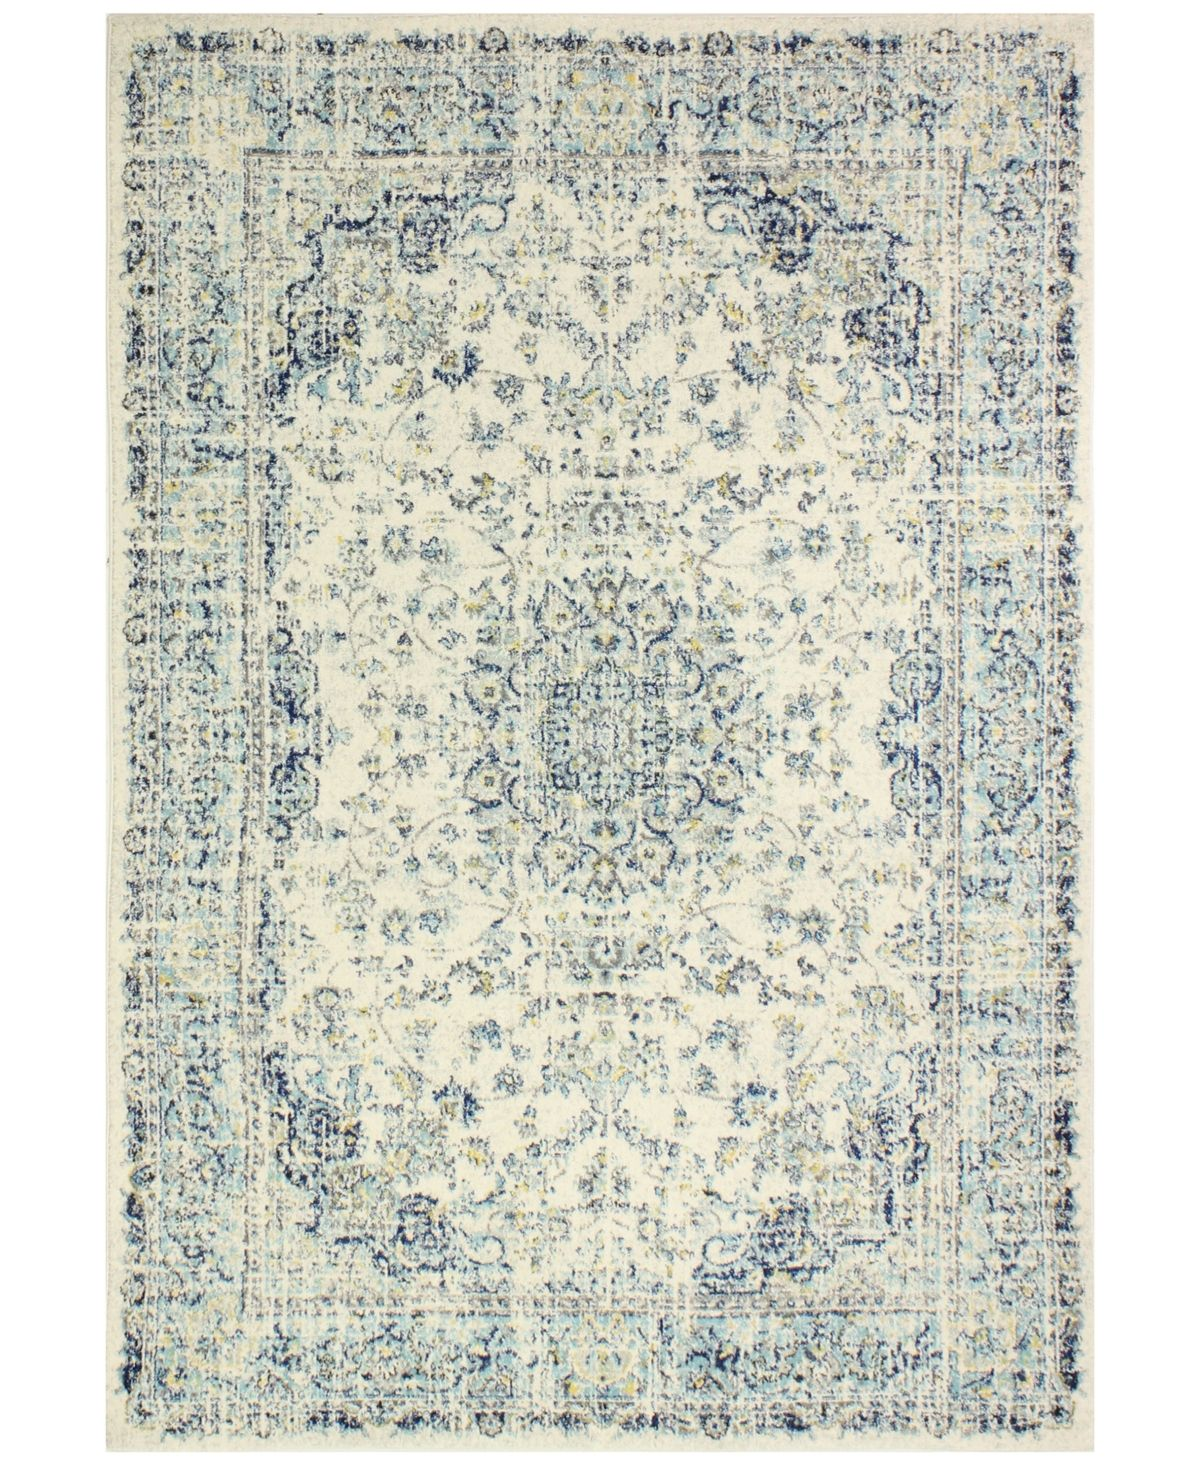 Medley 5446a Ivory 8 6 X 11 6 Area Rug Ivory Area Rugs Rugs